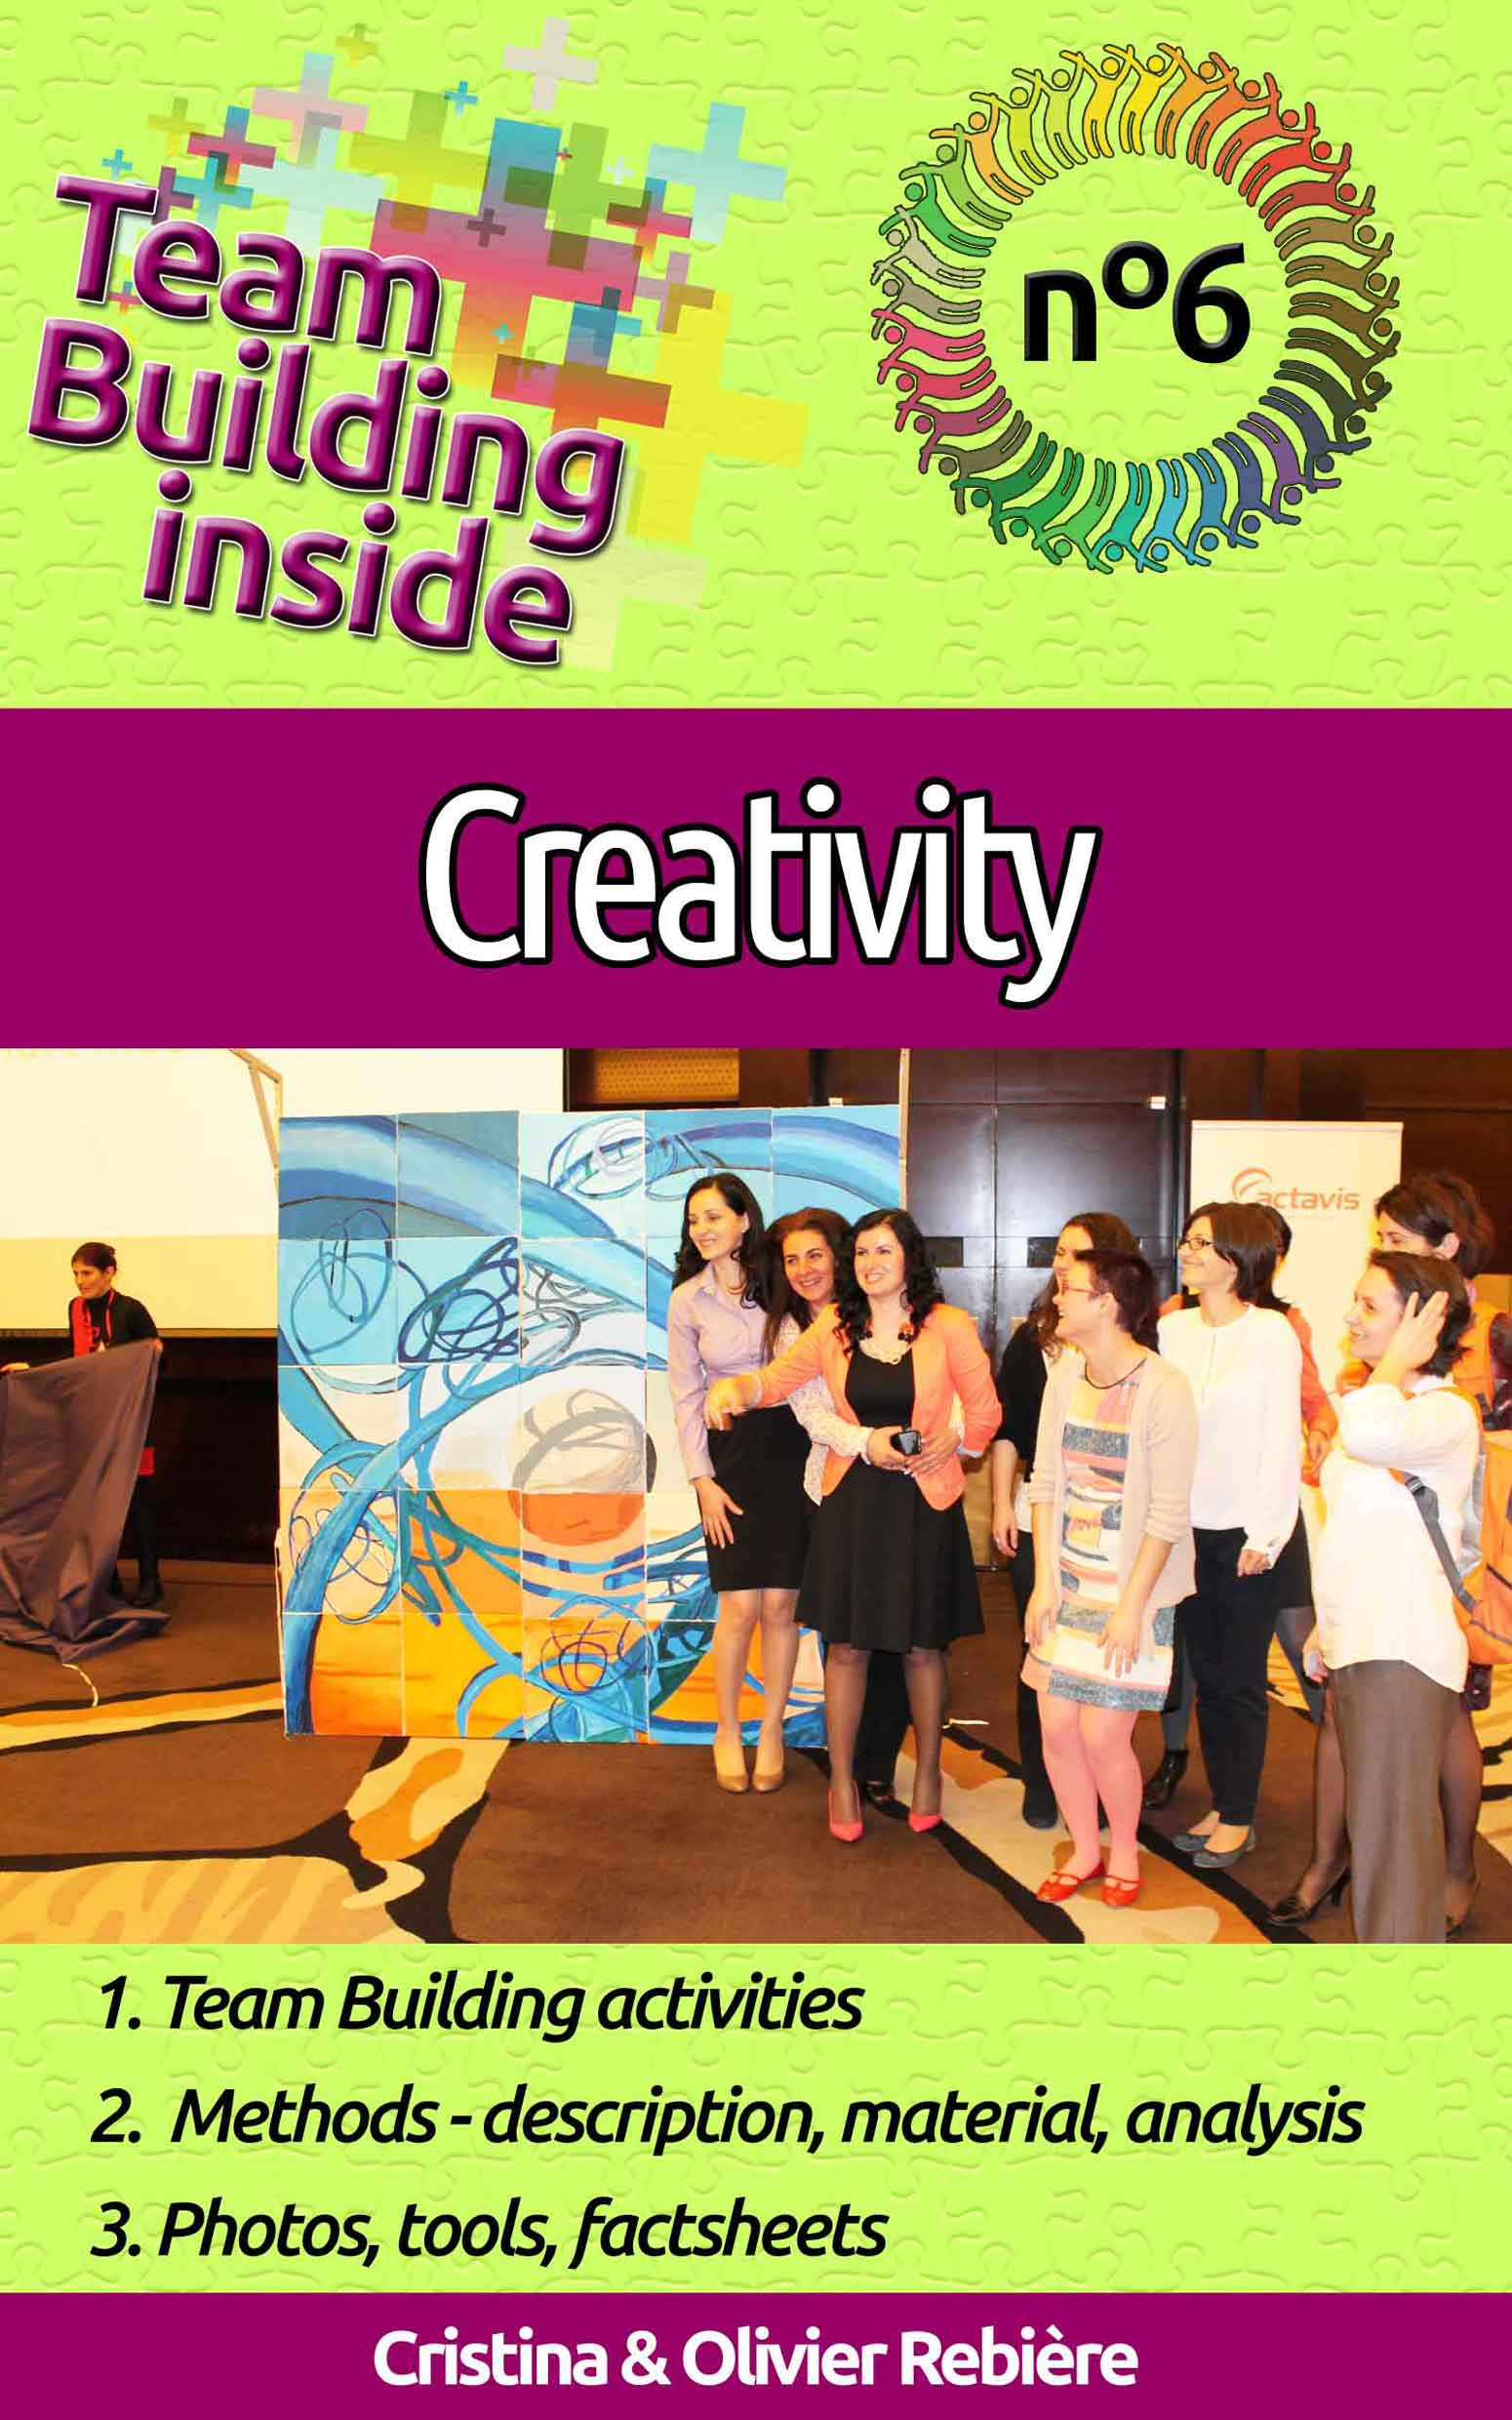 Team Building inside #6 - creativity - Cristina Rebiere & Olivier Rebiere